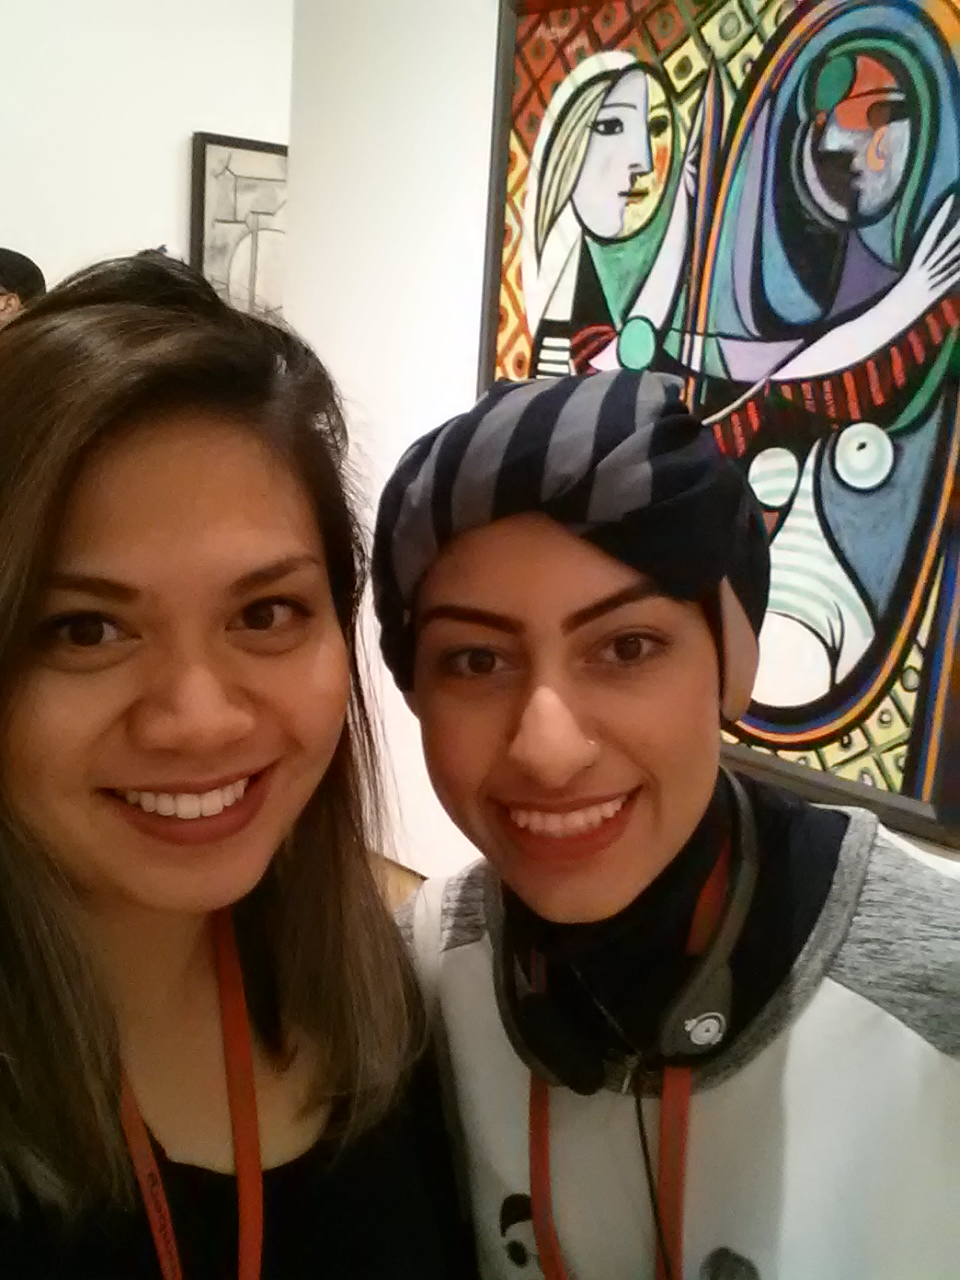 Pauline and Durrah enjoying the visit to MoMA